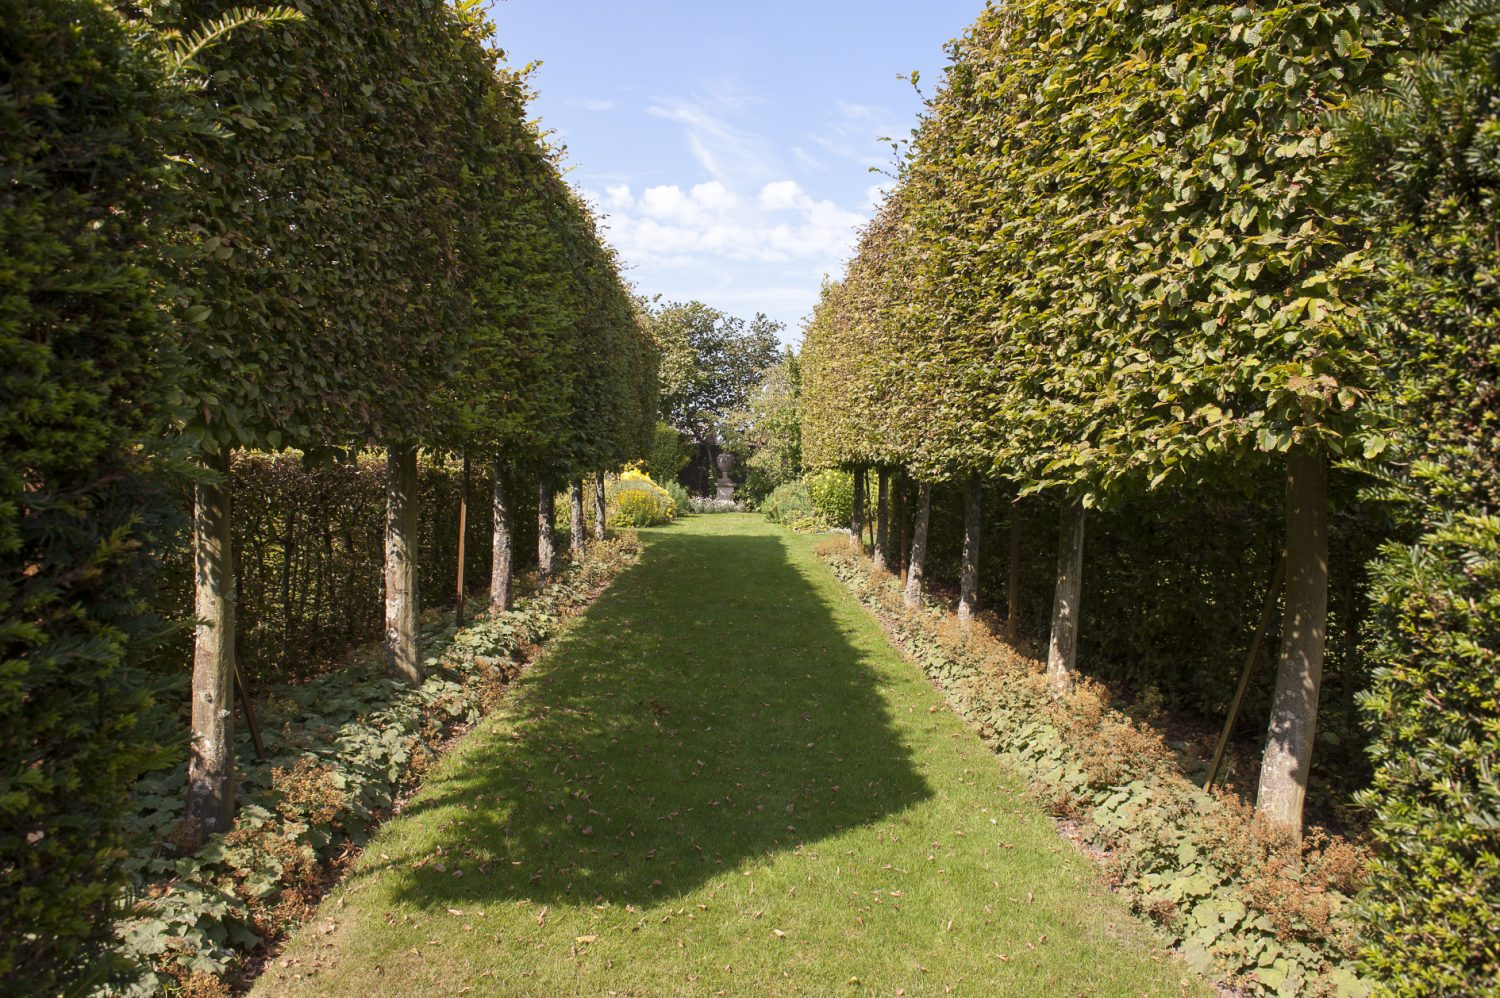 Tall yew hedges lead the way to the white garden which is strongly reminiscent of the larger version at Sissinghurst